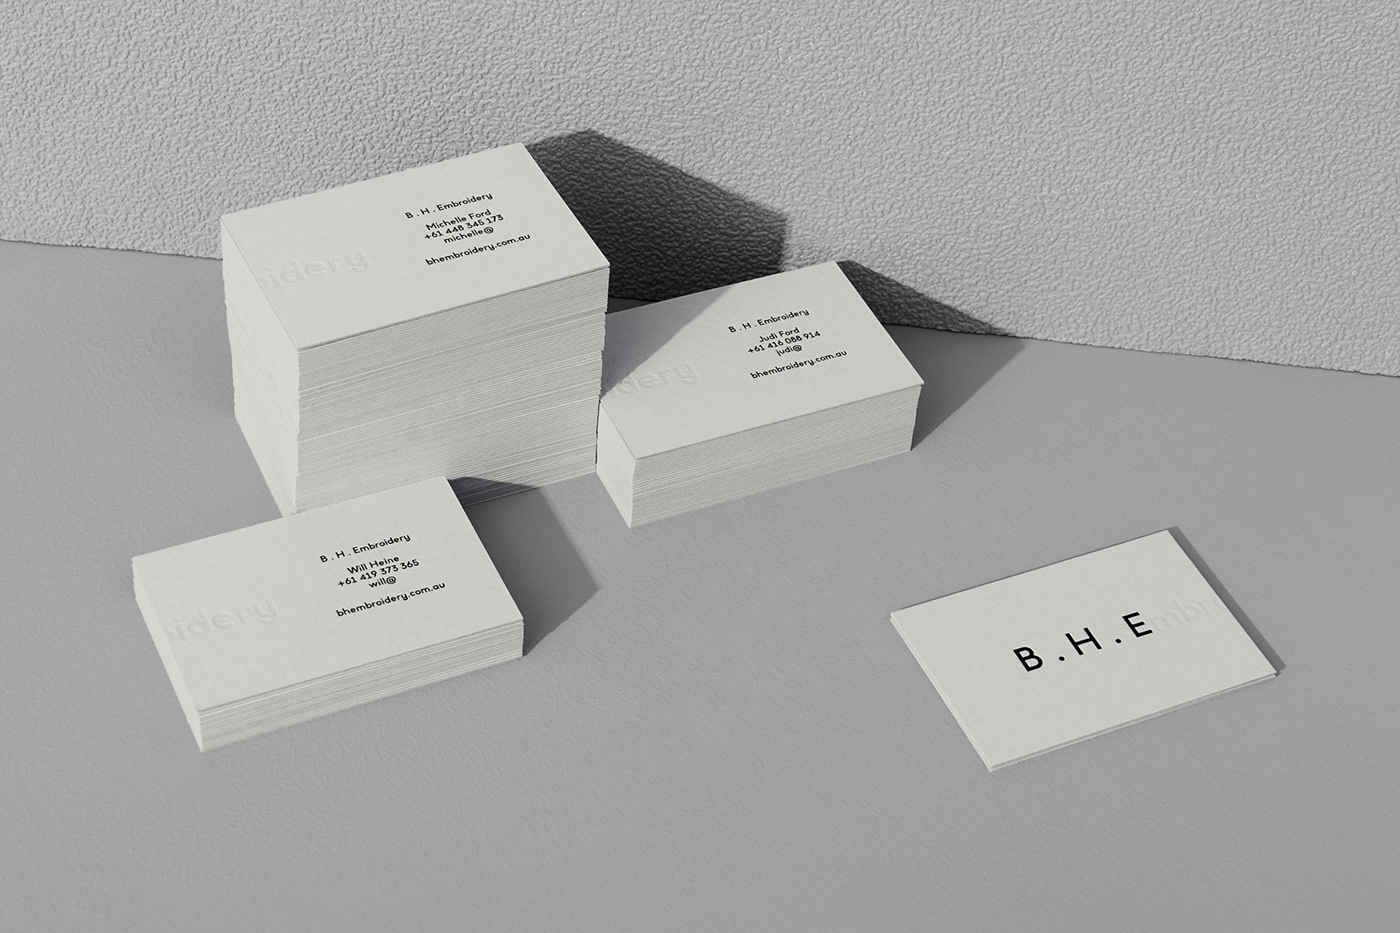 Stationery letterpress colorplan black and white grey business card letterhead With Compliments Slip emboss